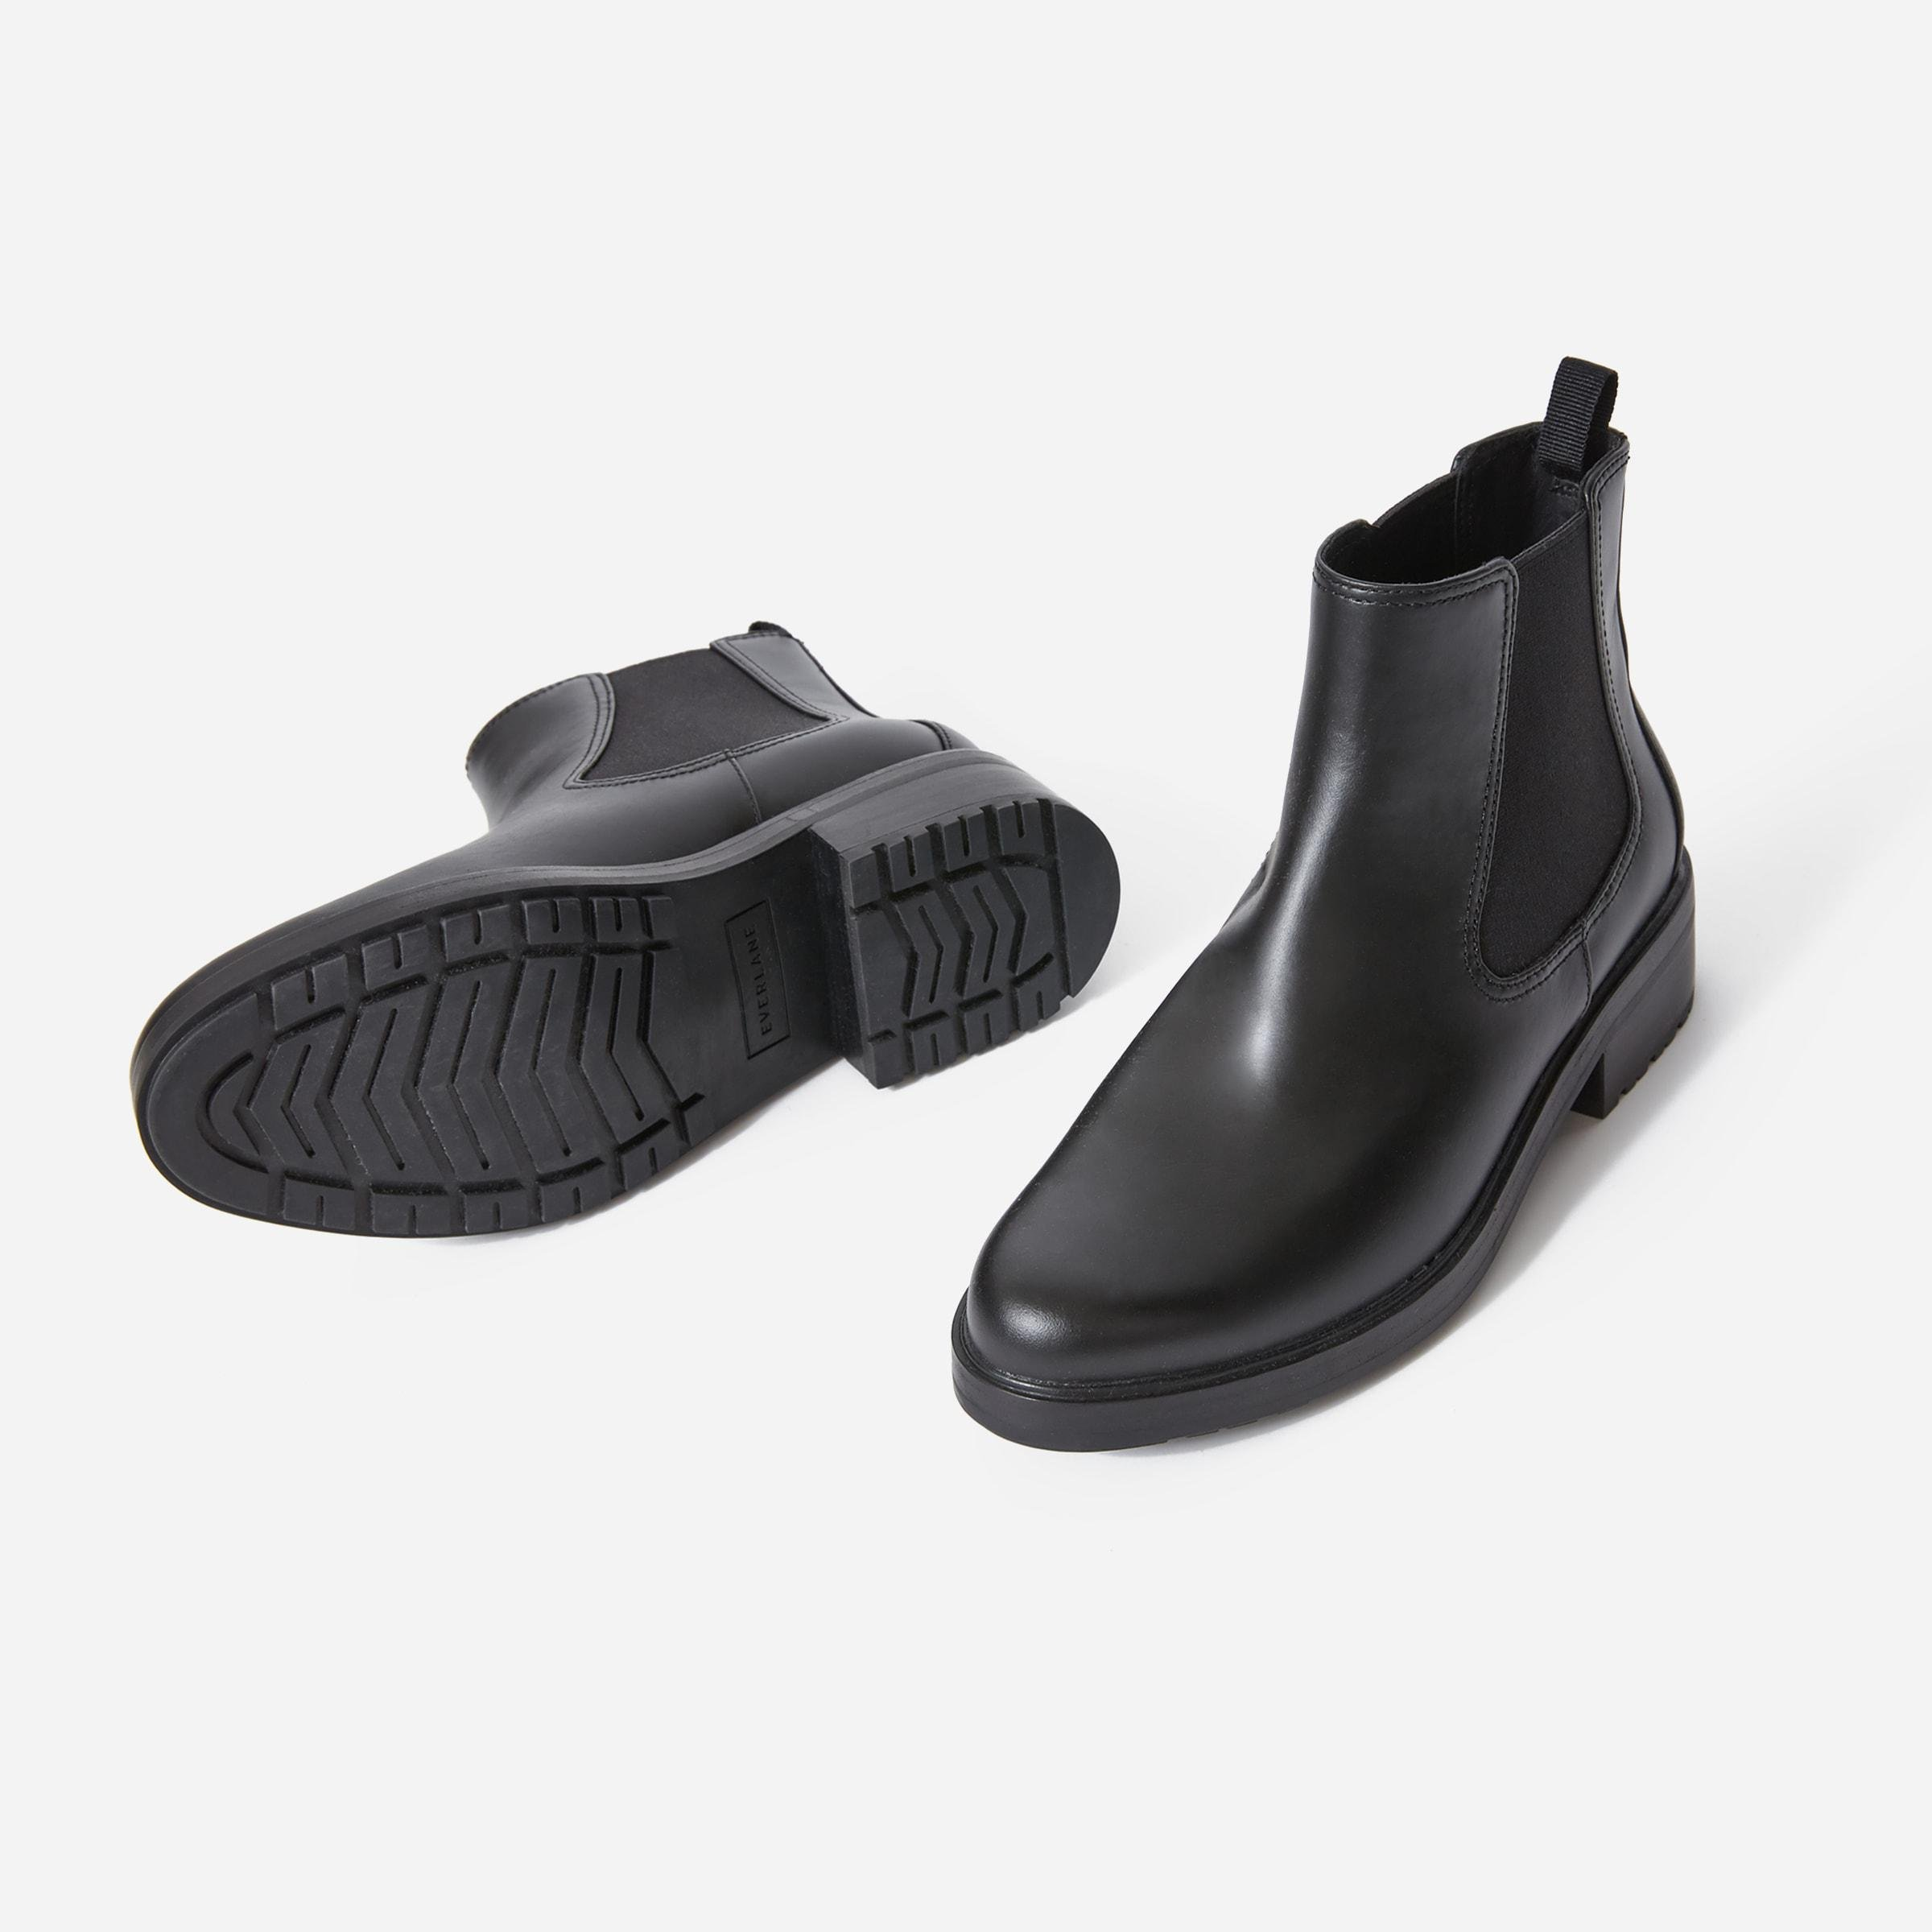 The Modern Utility Chelsea Boot 2